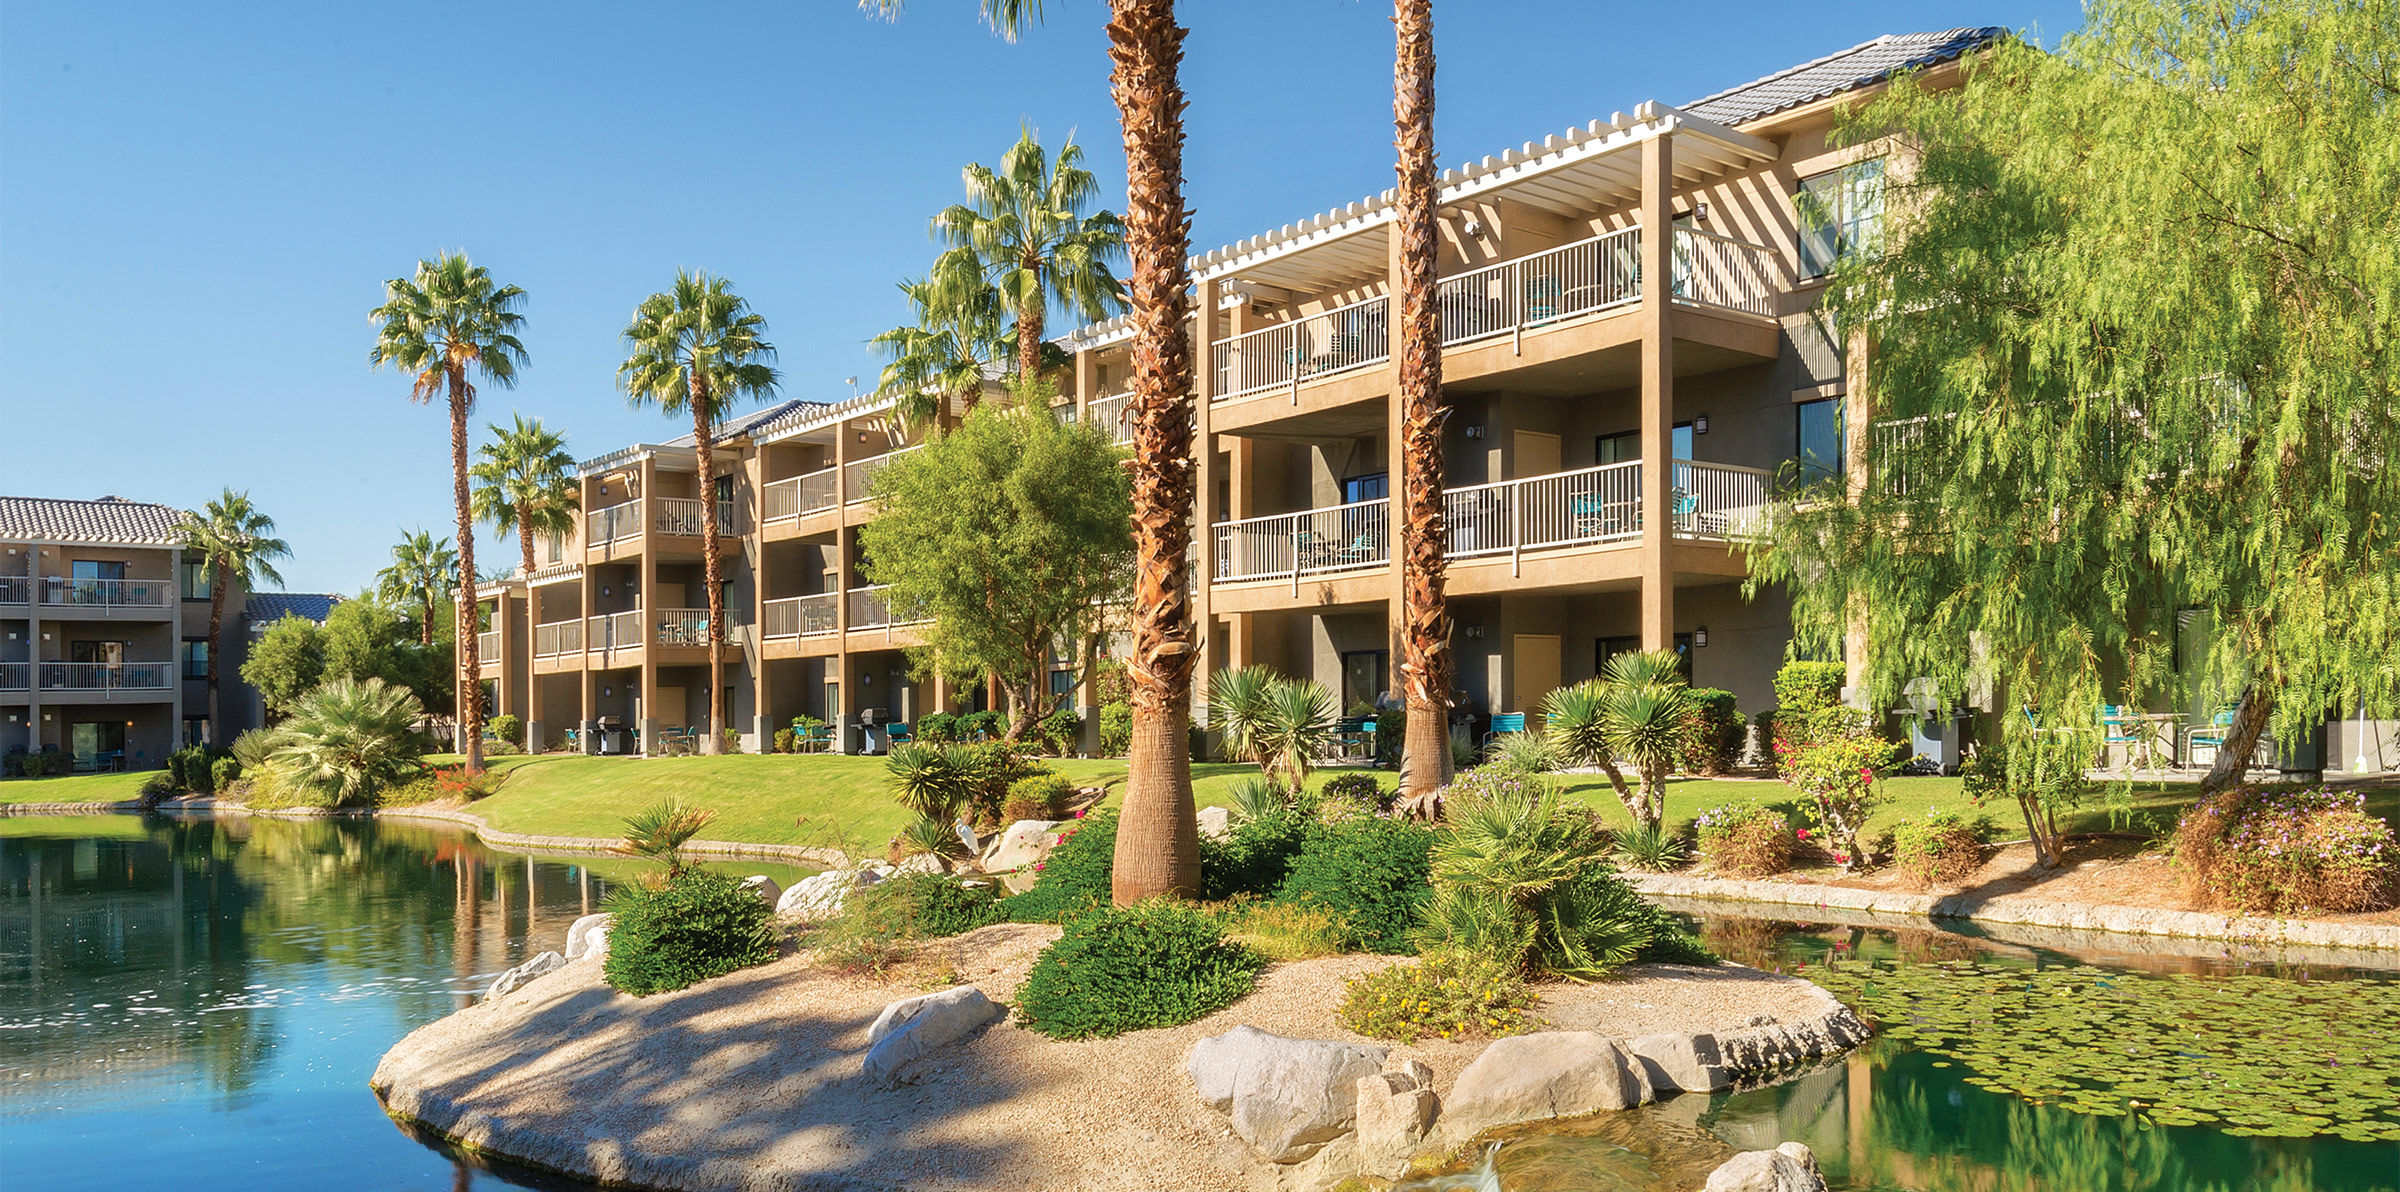 Apartment 3 Bedroom 2 Bath In Indio  CA   Palm Springs  5 miles from COACHELLA photo 20212617